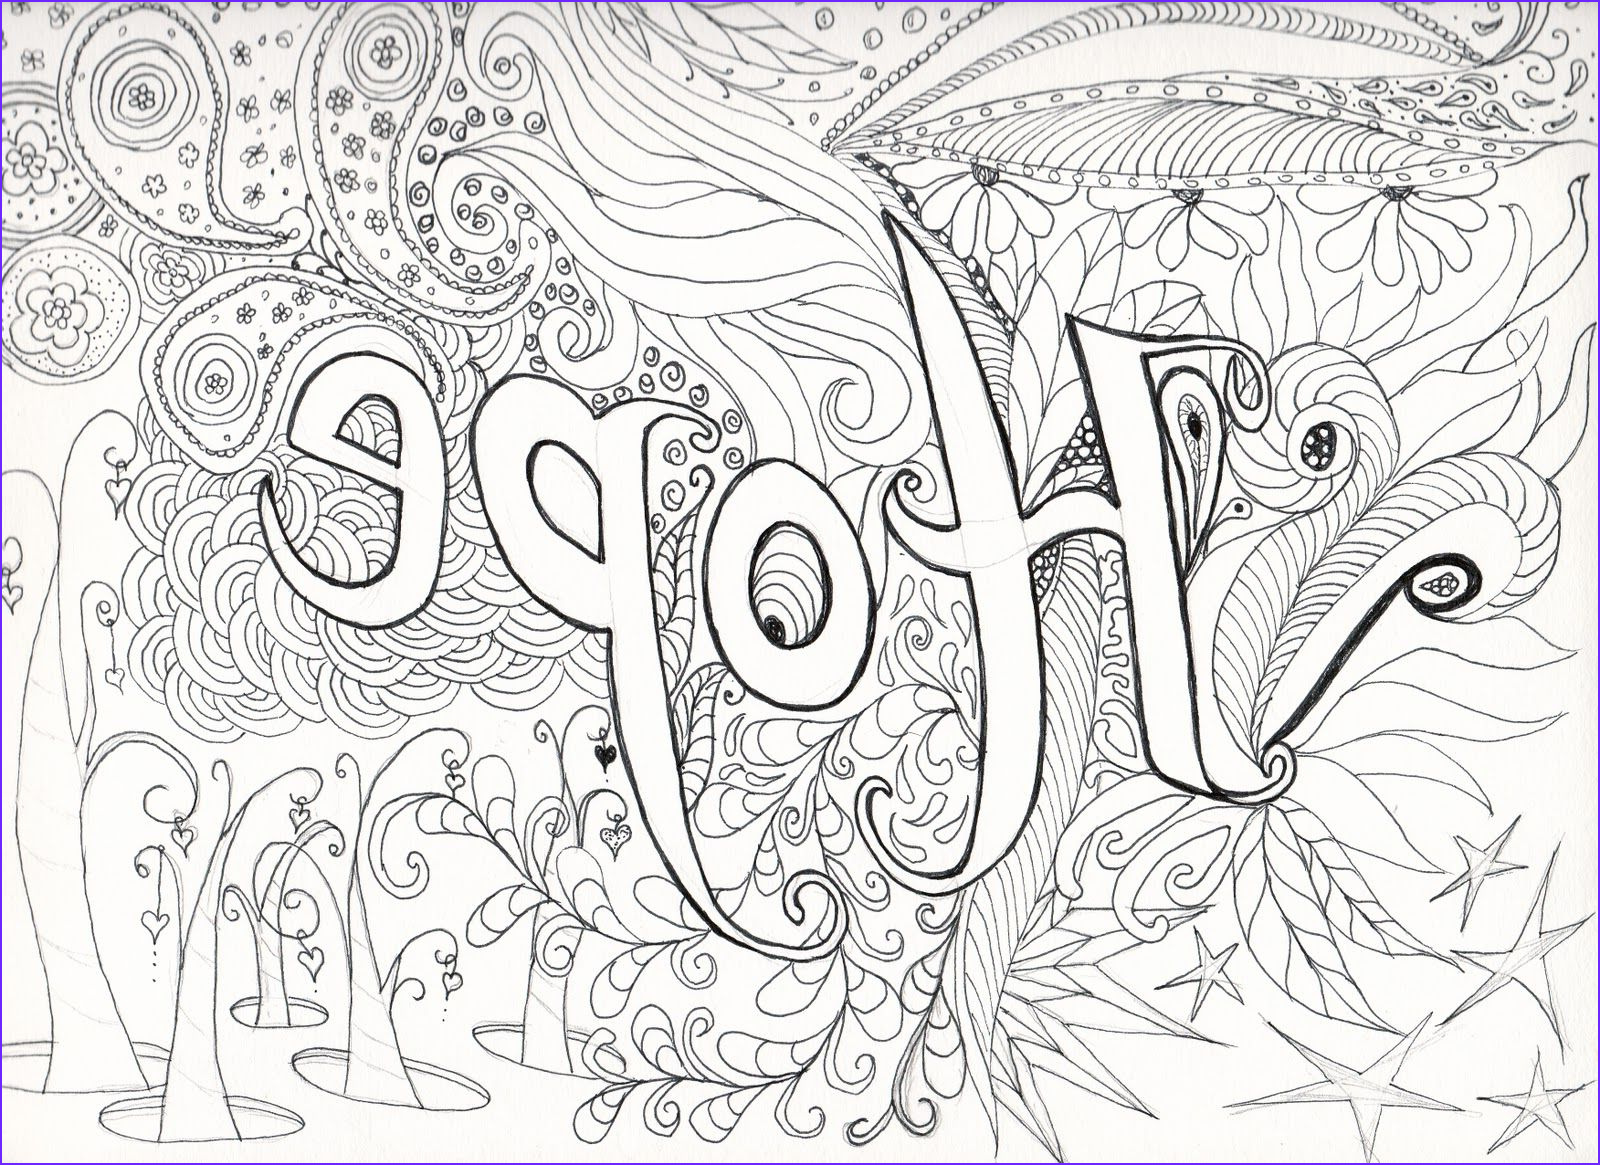 Advanced Coloring Pages Unique Image Very Advanced Coloring Pages for Adults